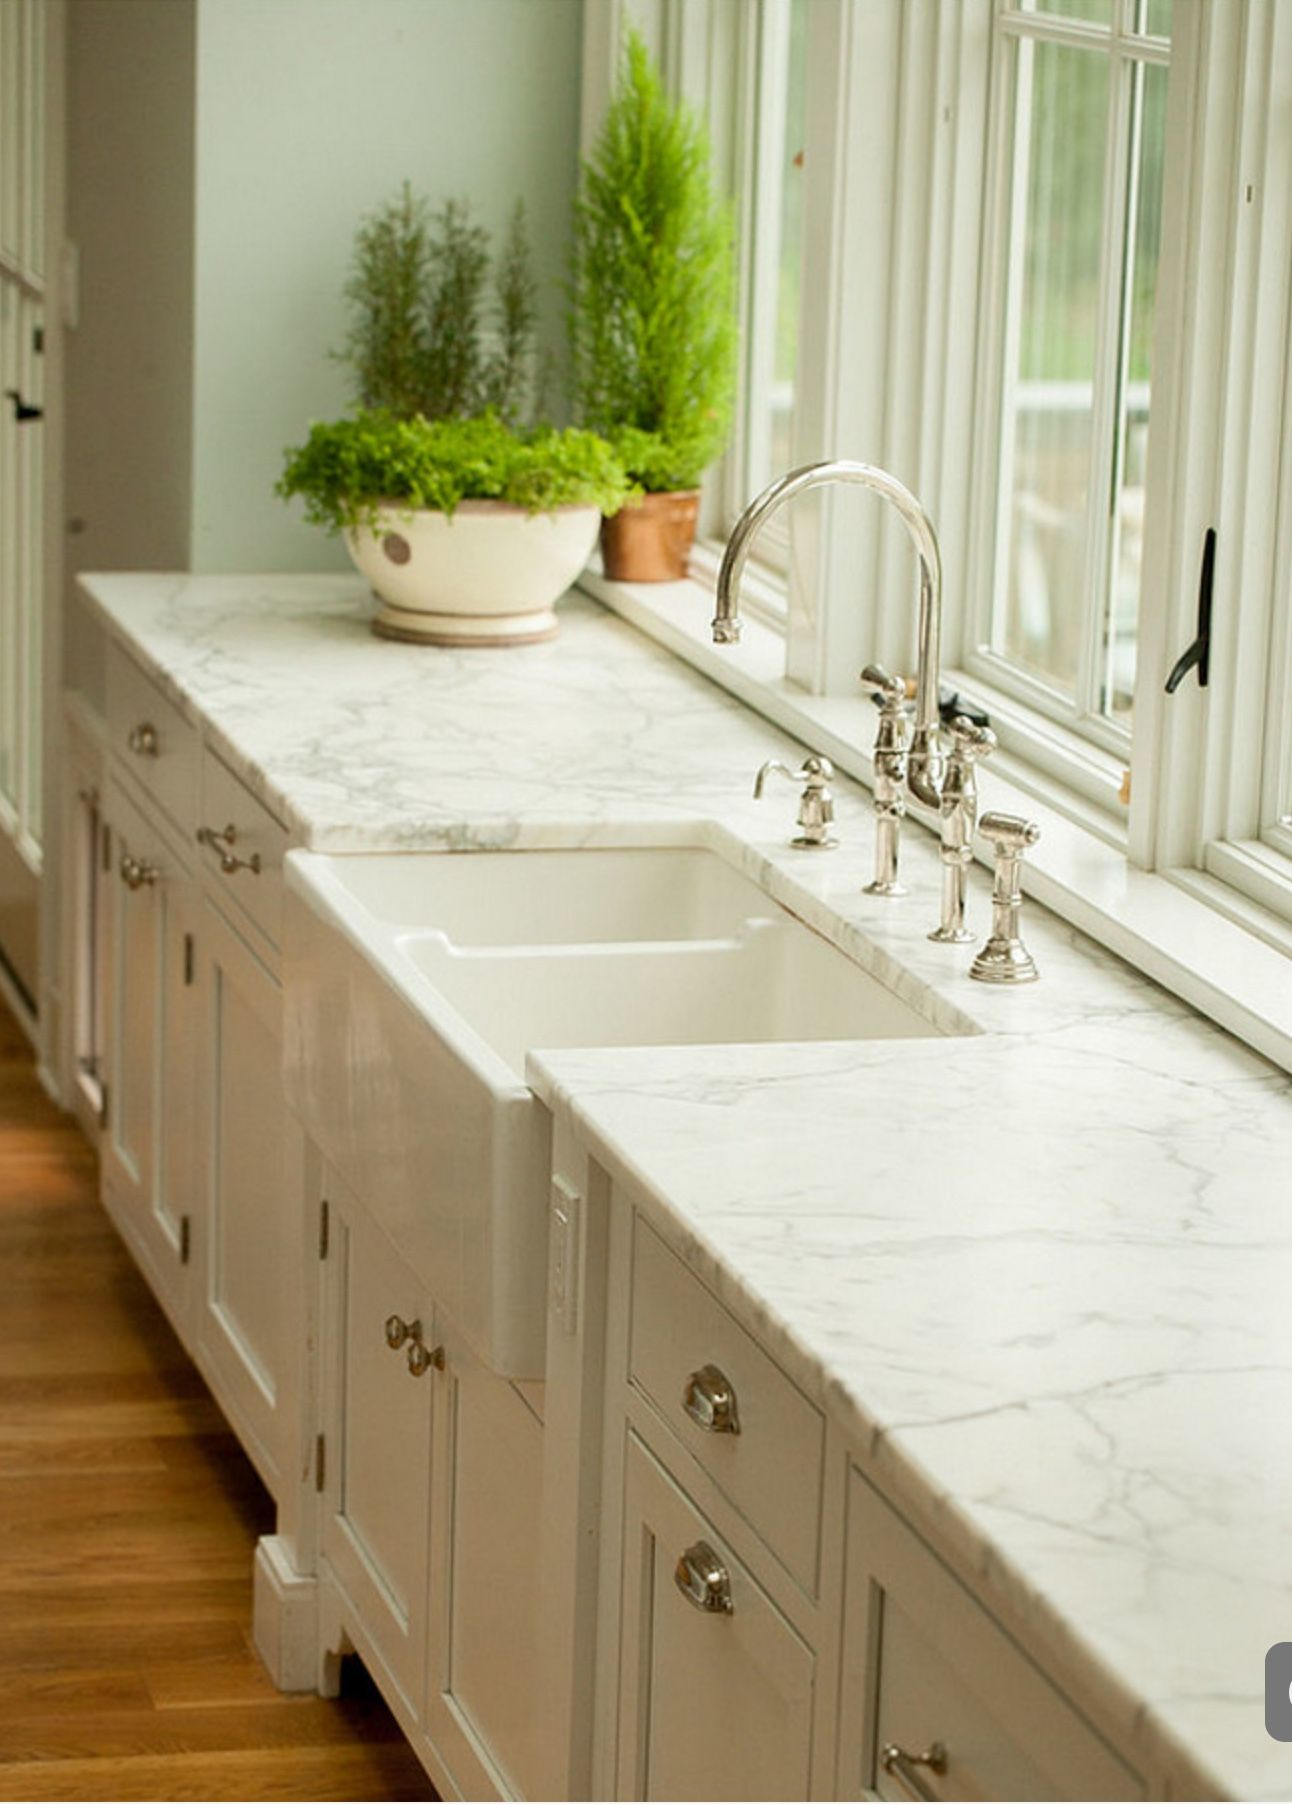 Pin by Kyra Bruno on My kitchen inspiration in Pinterest